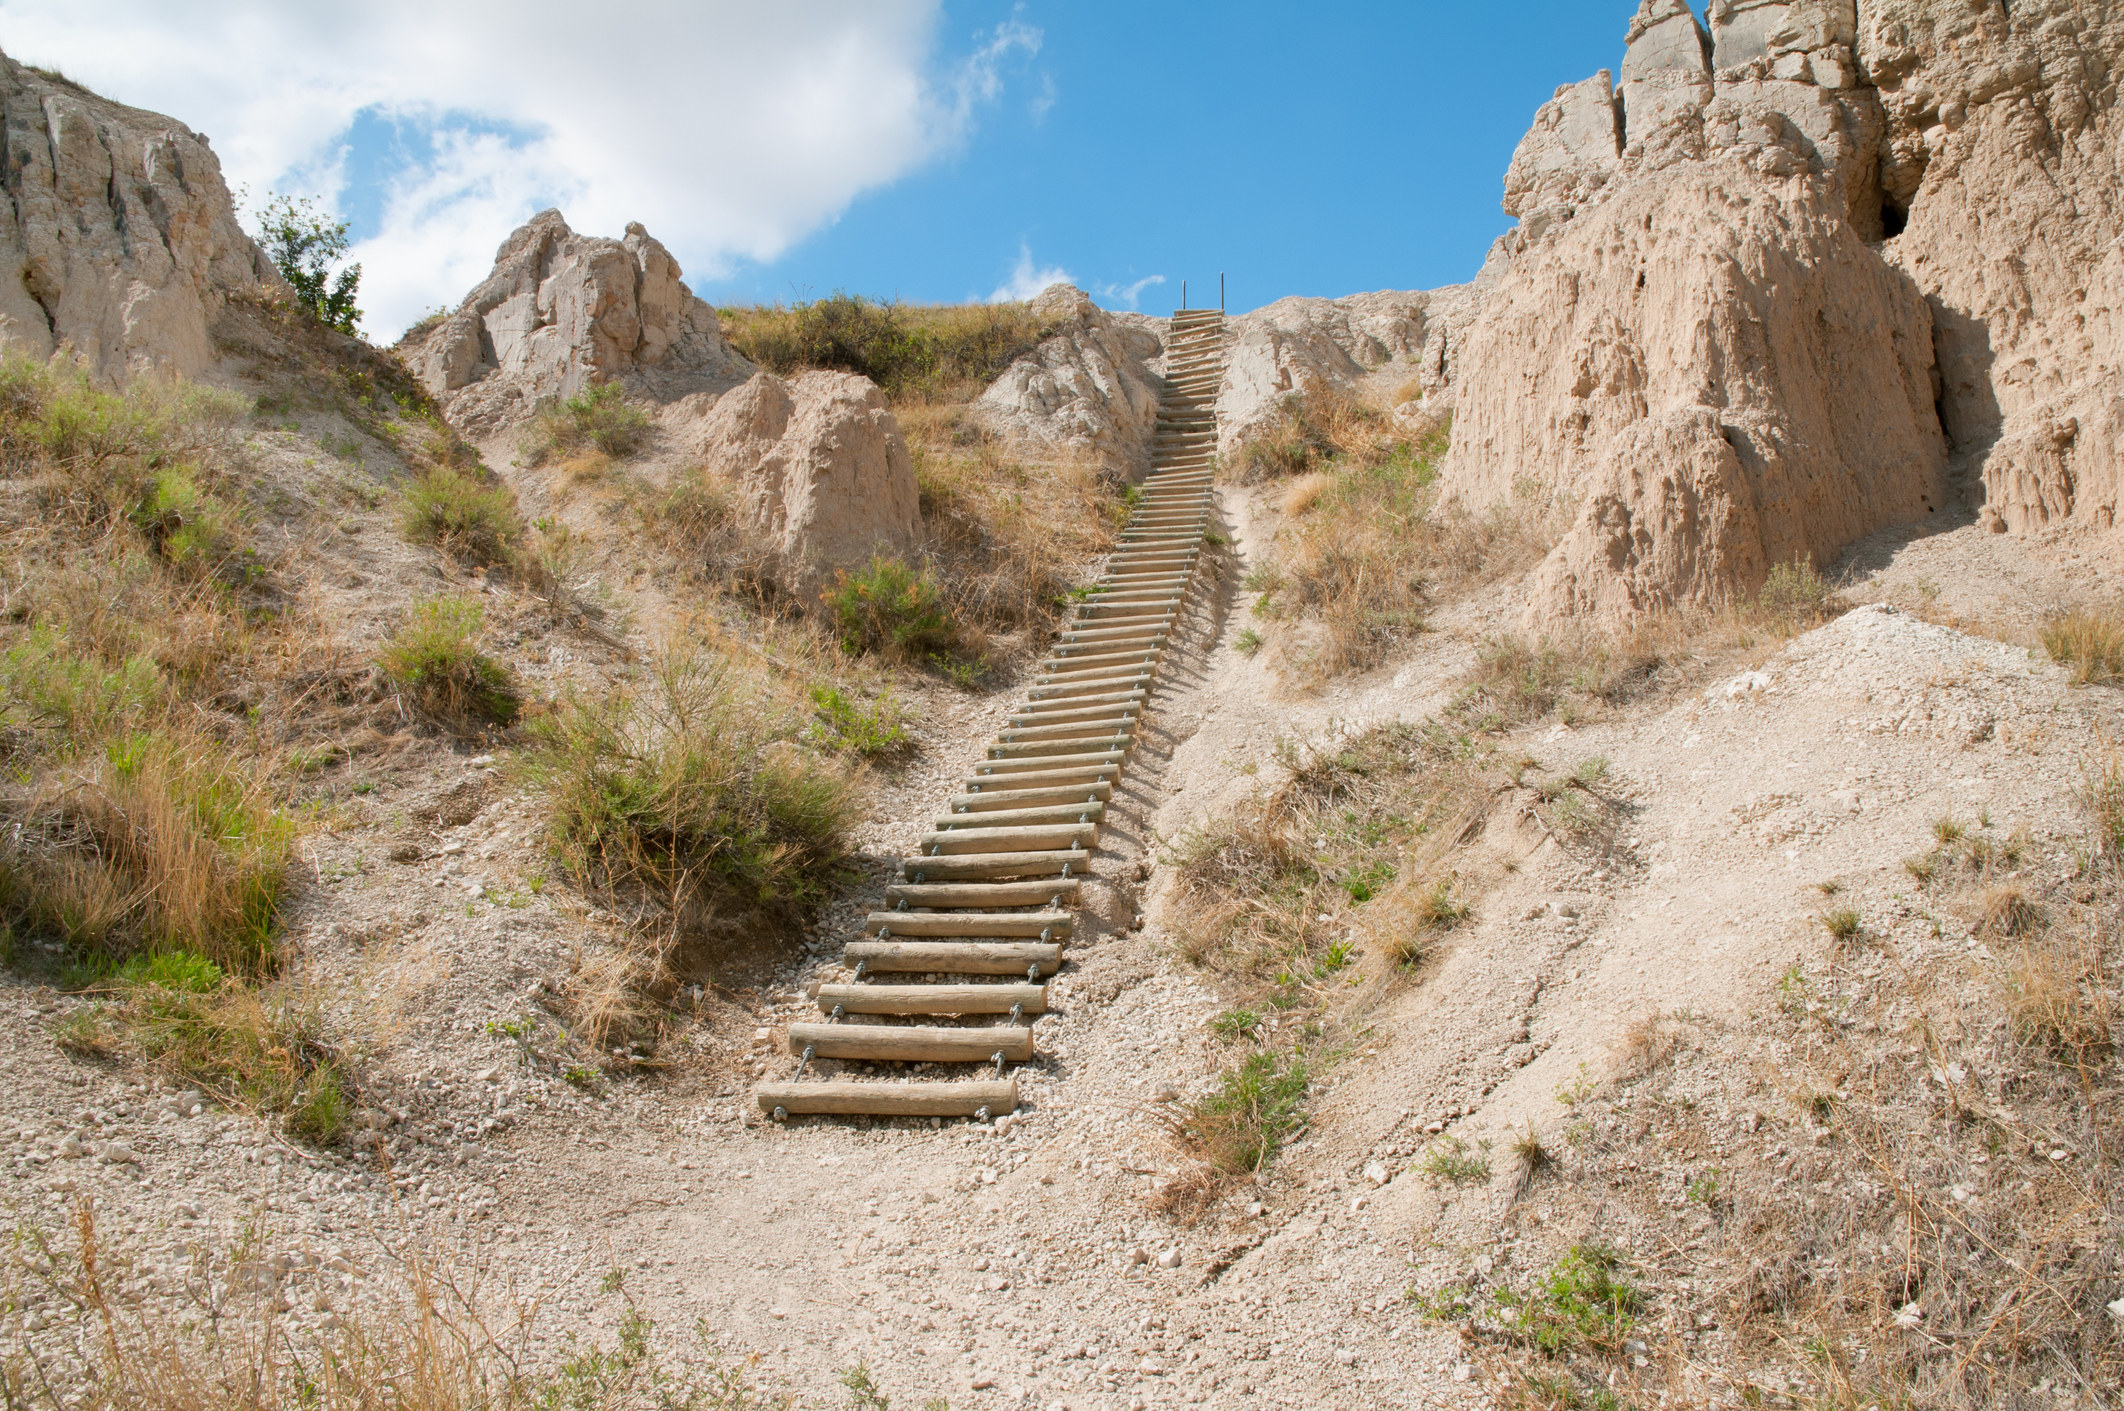 Rustic, wooden ladder climbing along Notch Trail in the Badlands National Park